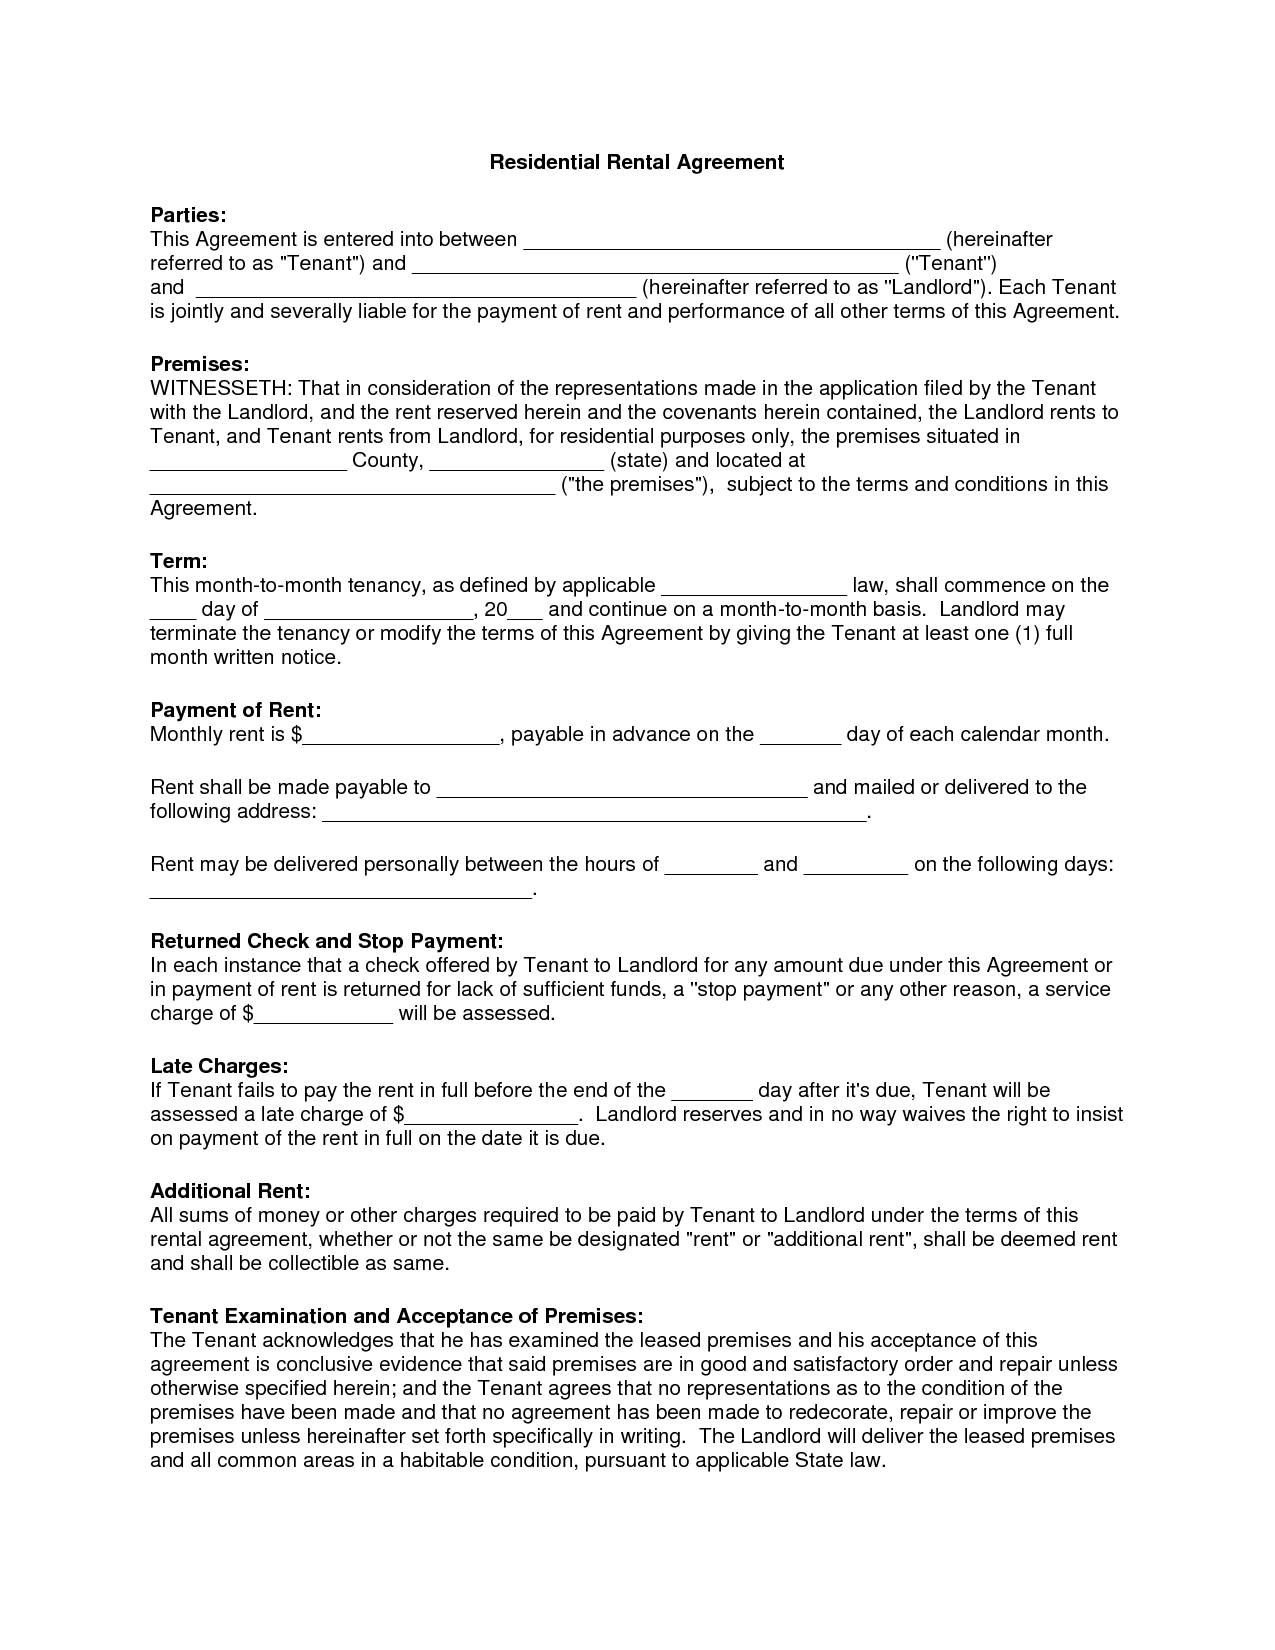 Residential Rental Agreement Template South Africa